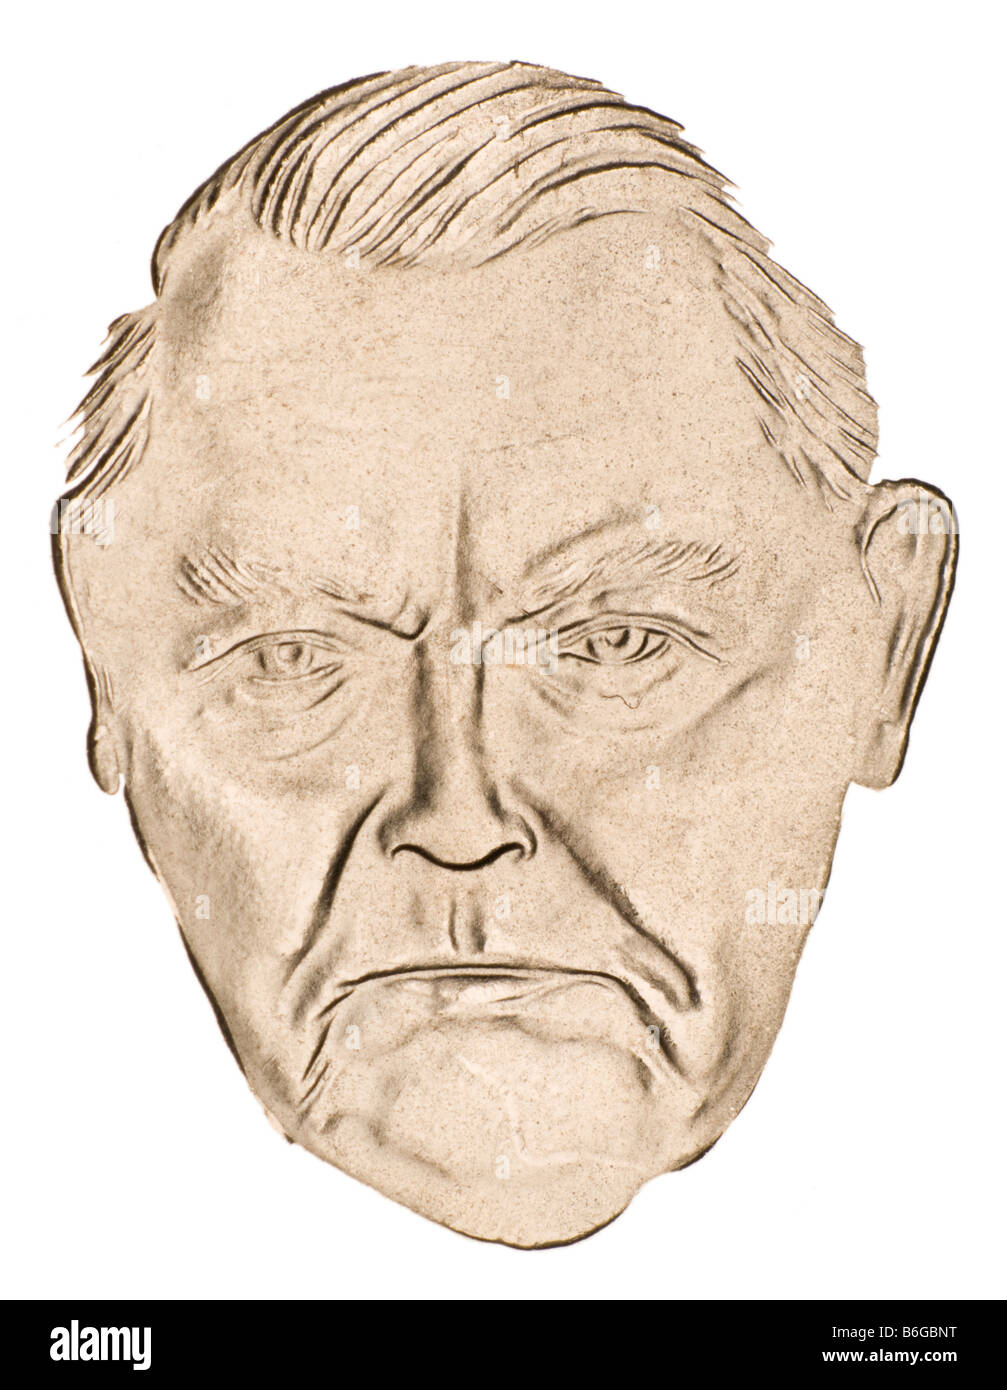 Cutout portrait of A Ludwig Erhard (German Chancellor, 1963-66) from German 2M coin of 1997 - Stock Image